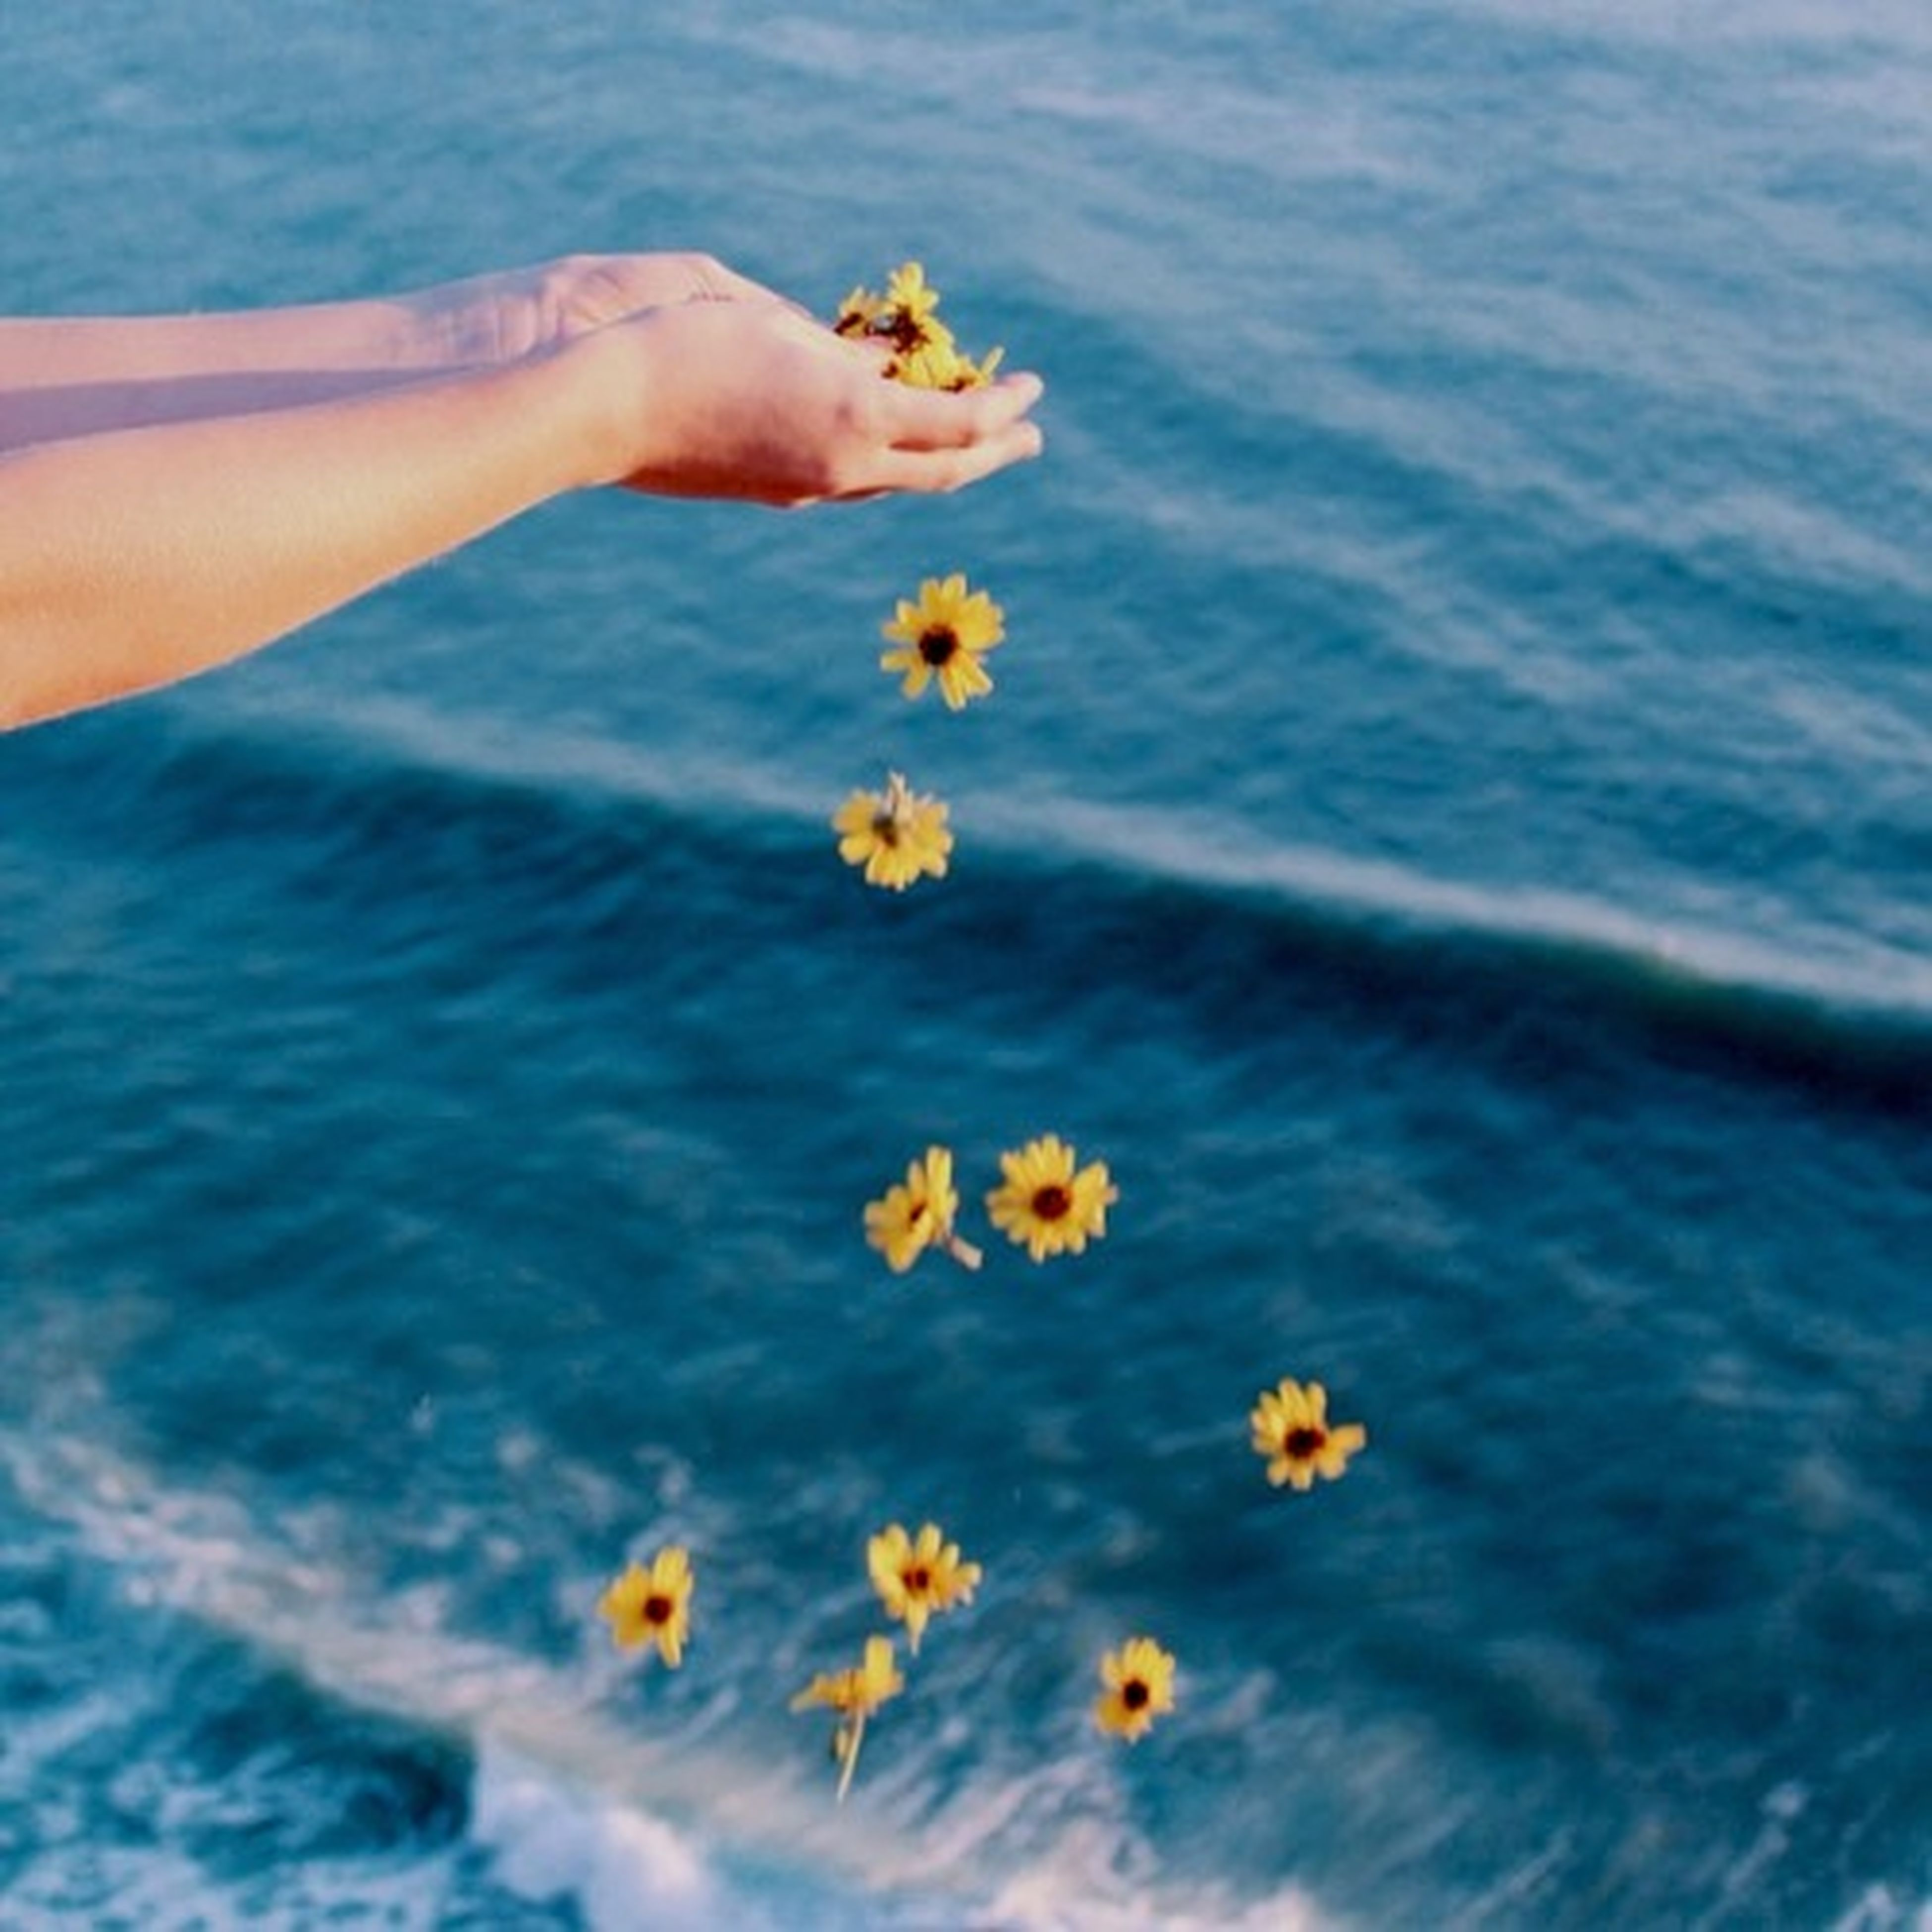 person, water, blue, flower, lifestyles, leisure activity, freshness, part of, yellow, sea, beauty in nature, holding, fragility, unrecognizable person, nature, cropped, petal